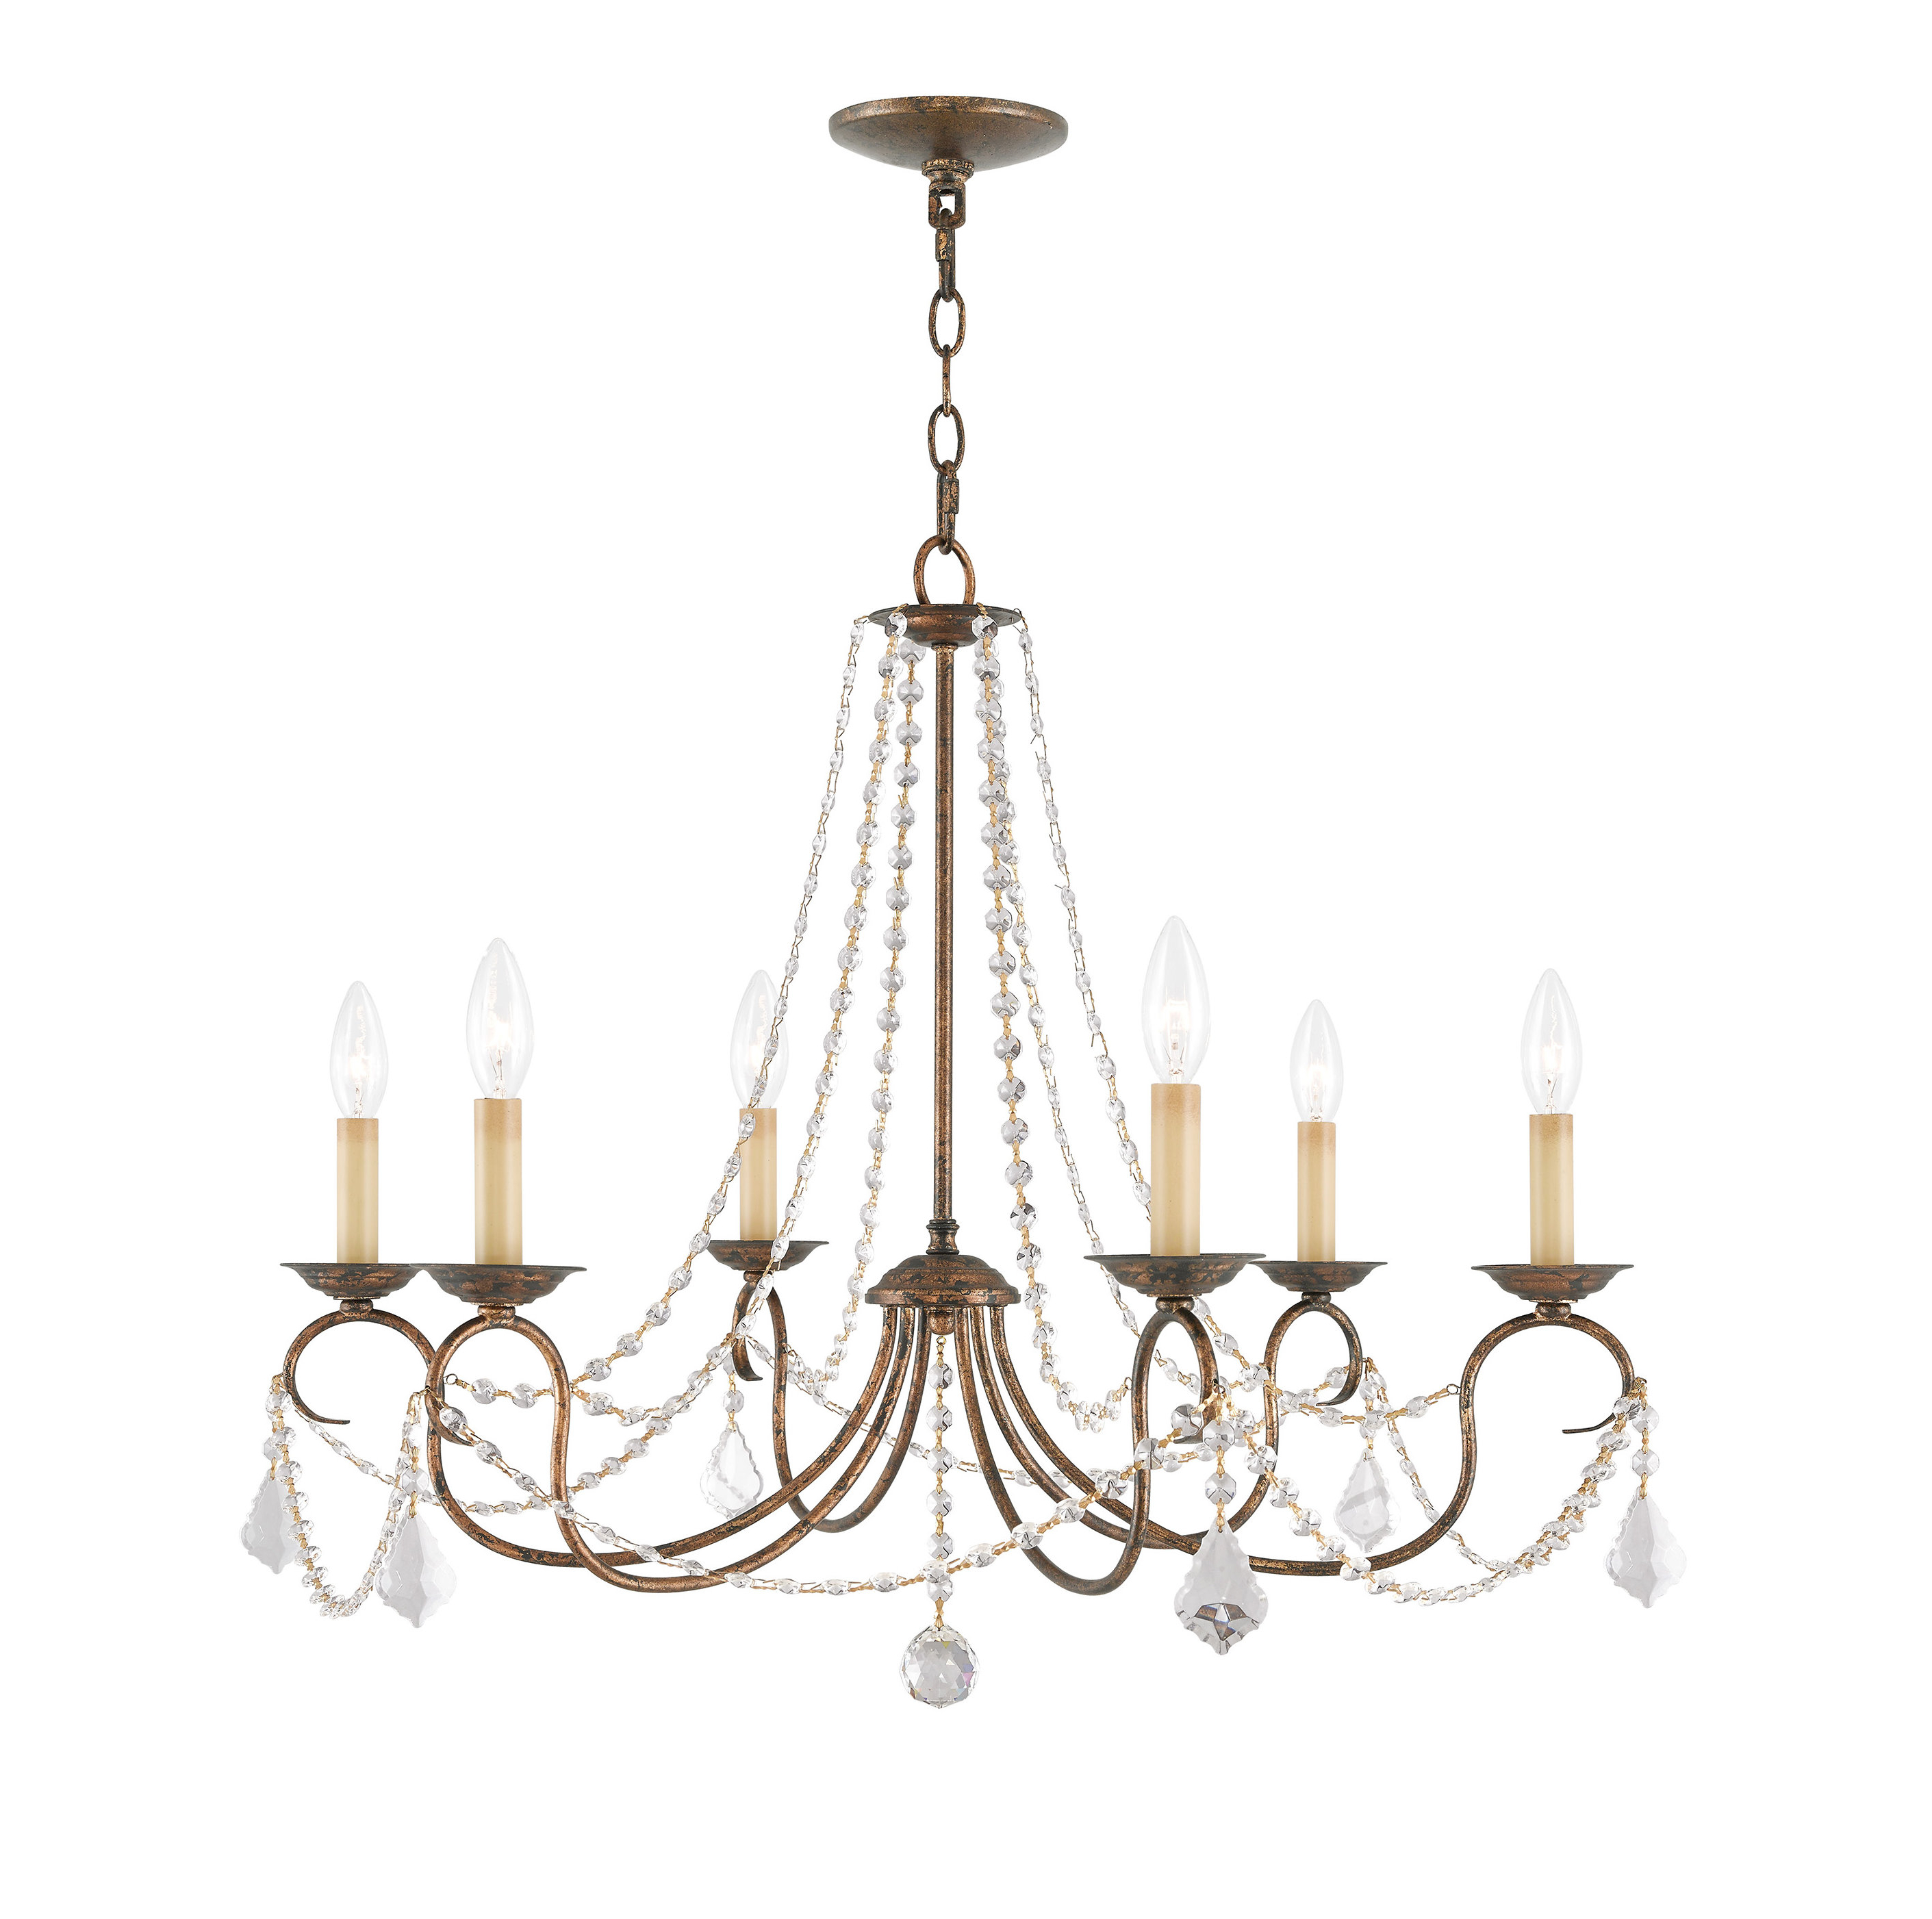 Well Known Devana 6 Light Candle Style Chandelier With Diaz 6 Light Candle Style Chandeliers (View 19 of 20)